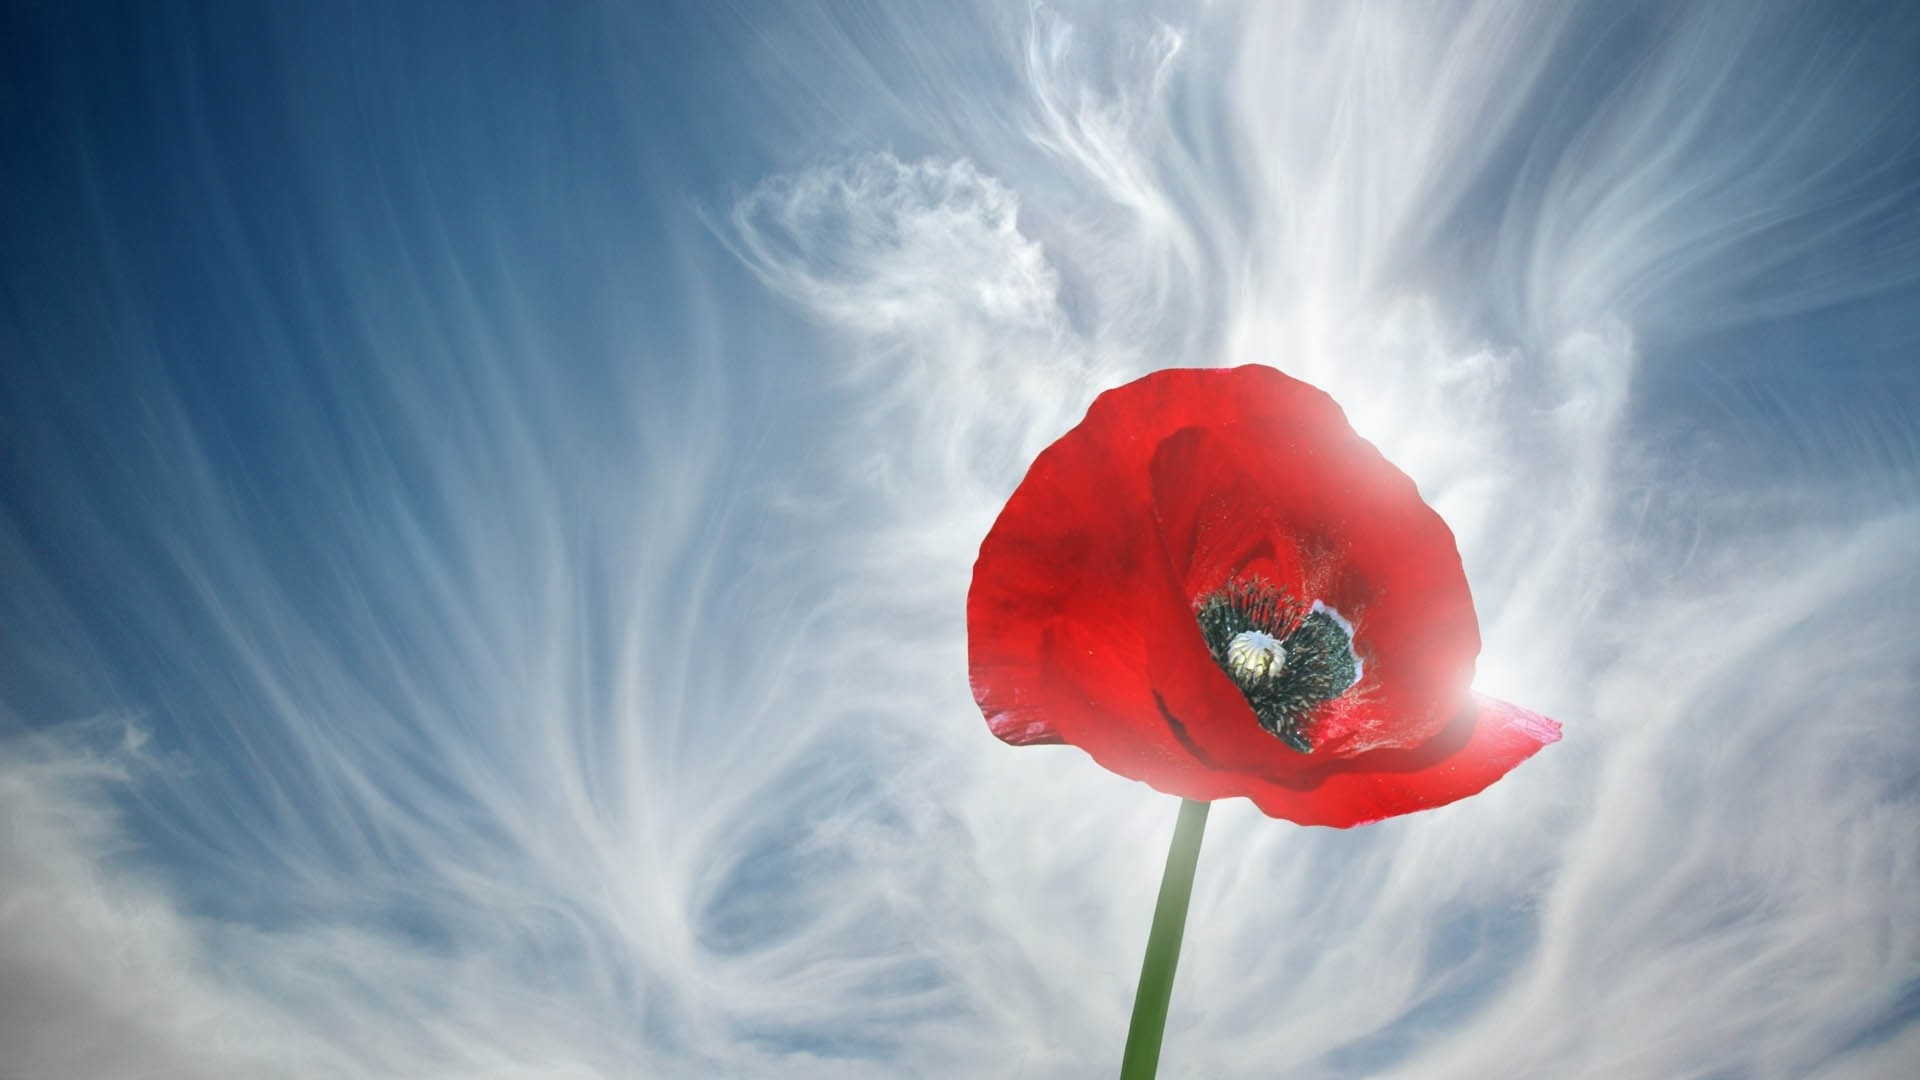 1920x1080 Poppy Smoke Stem Bud - Free Stock Photos, Images, HD Wallpaper